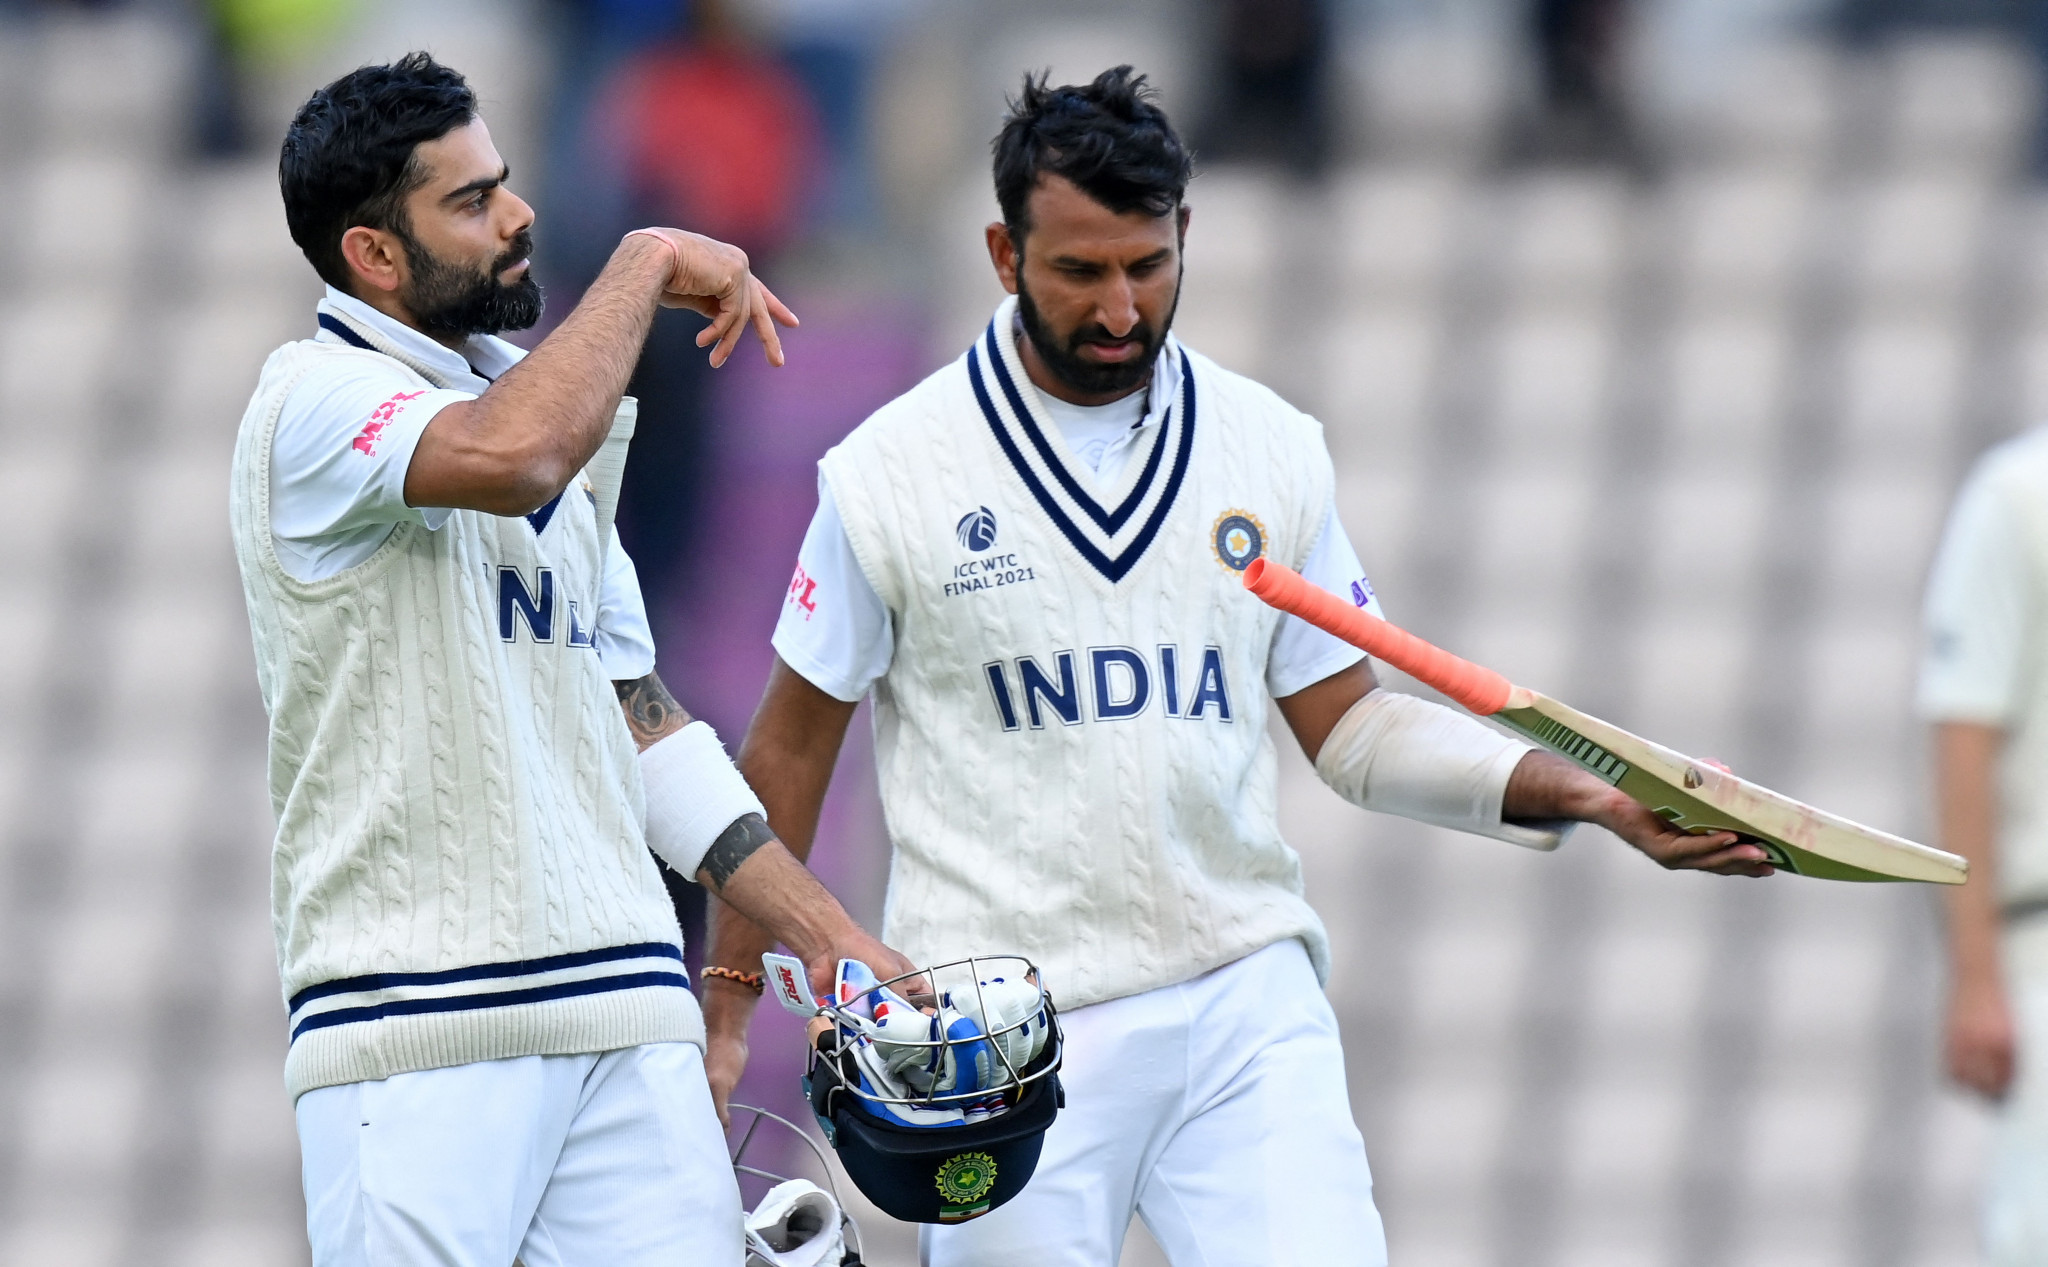 India lead New Zealand as second innings start at ICC World Test Championship Final